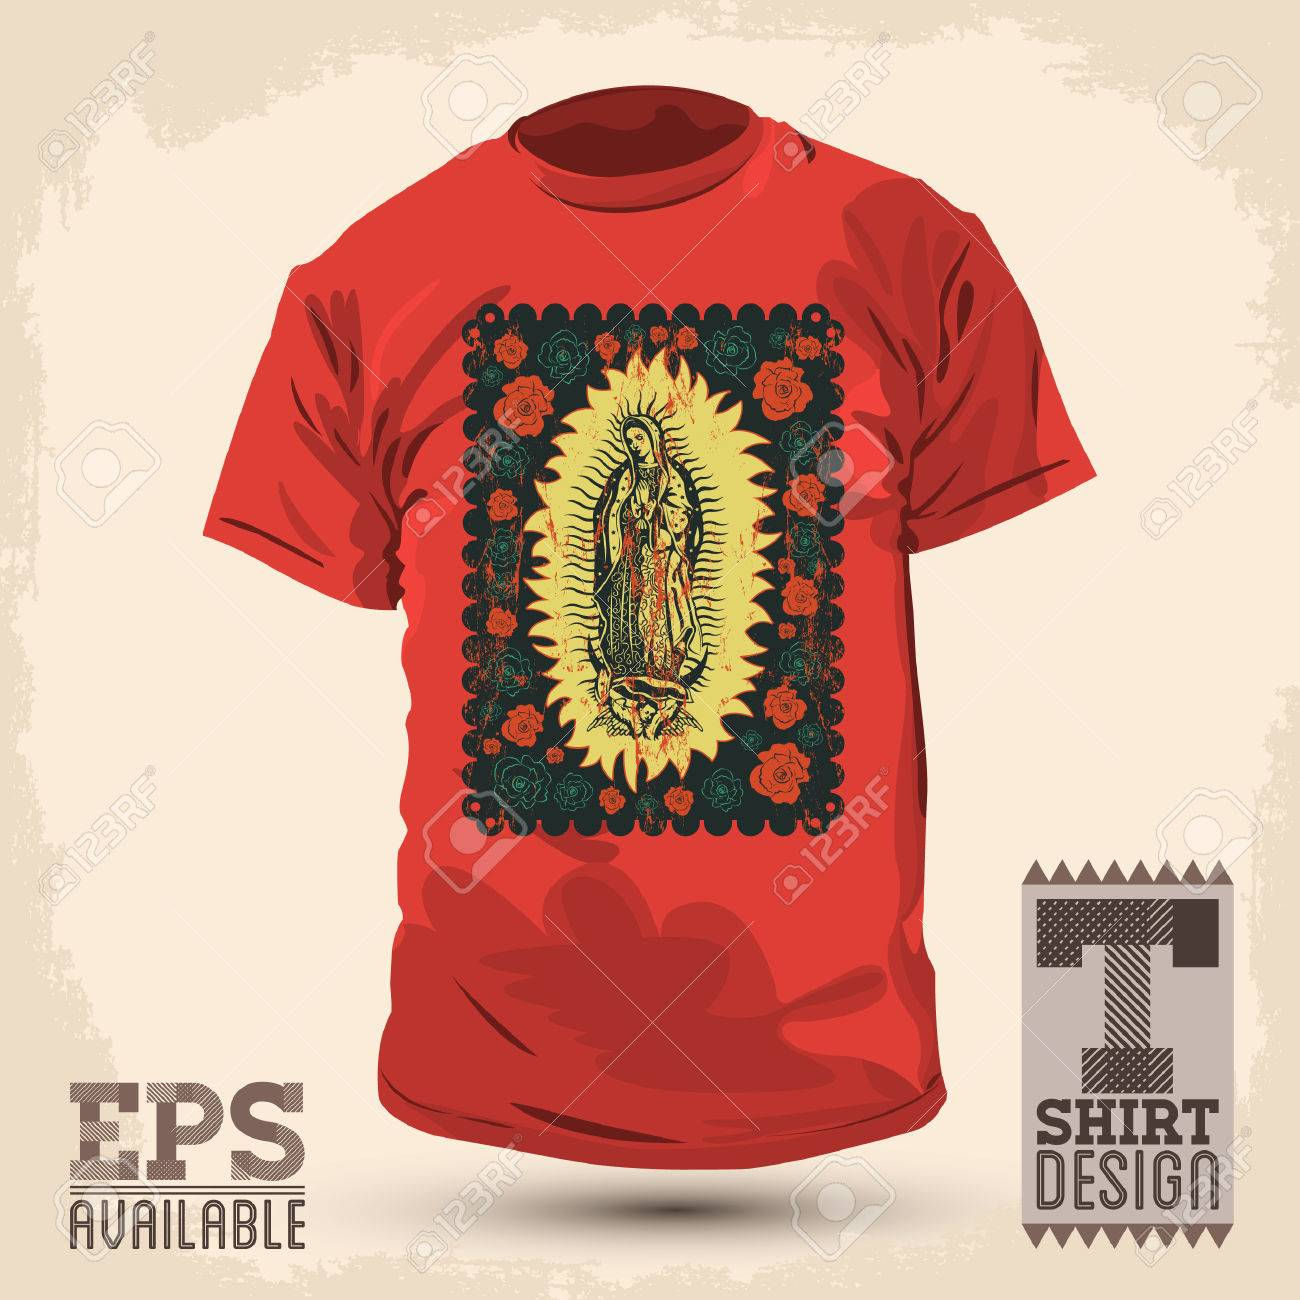 Shirt design vintage - Graphic T Shirt Design Mexican Virgin Of Guadalupe Vintage Silkscreen Style Poster